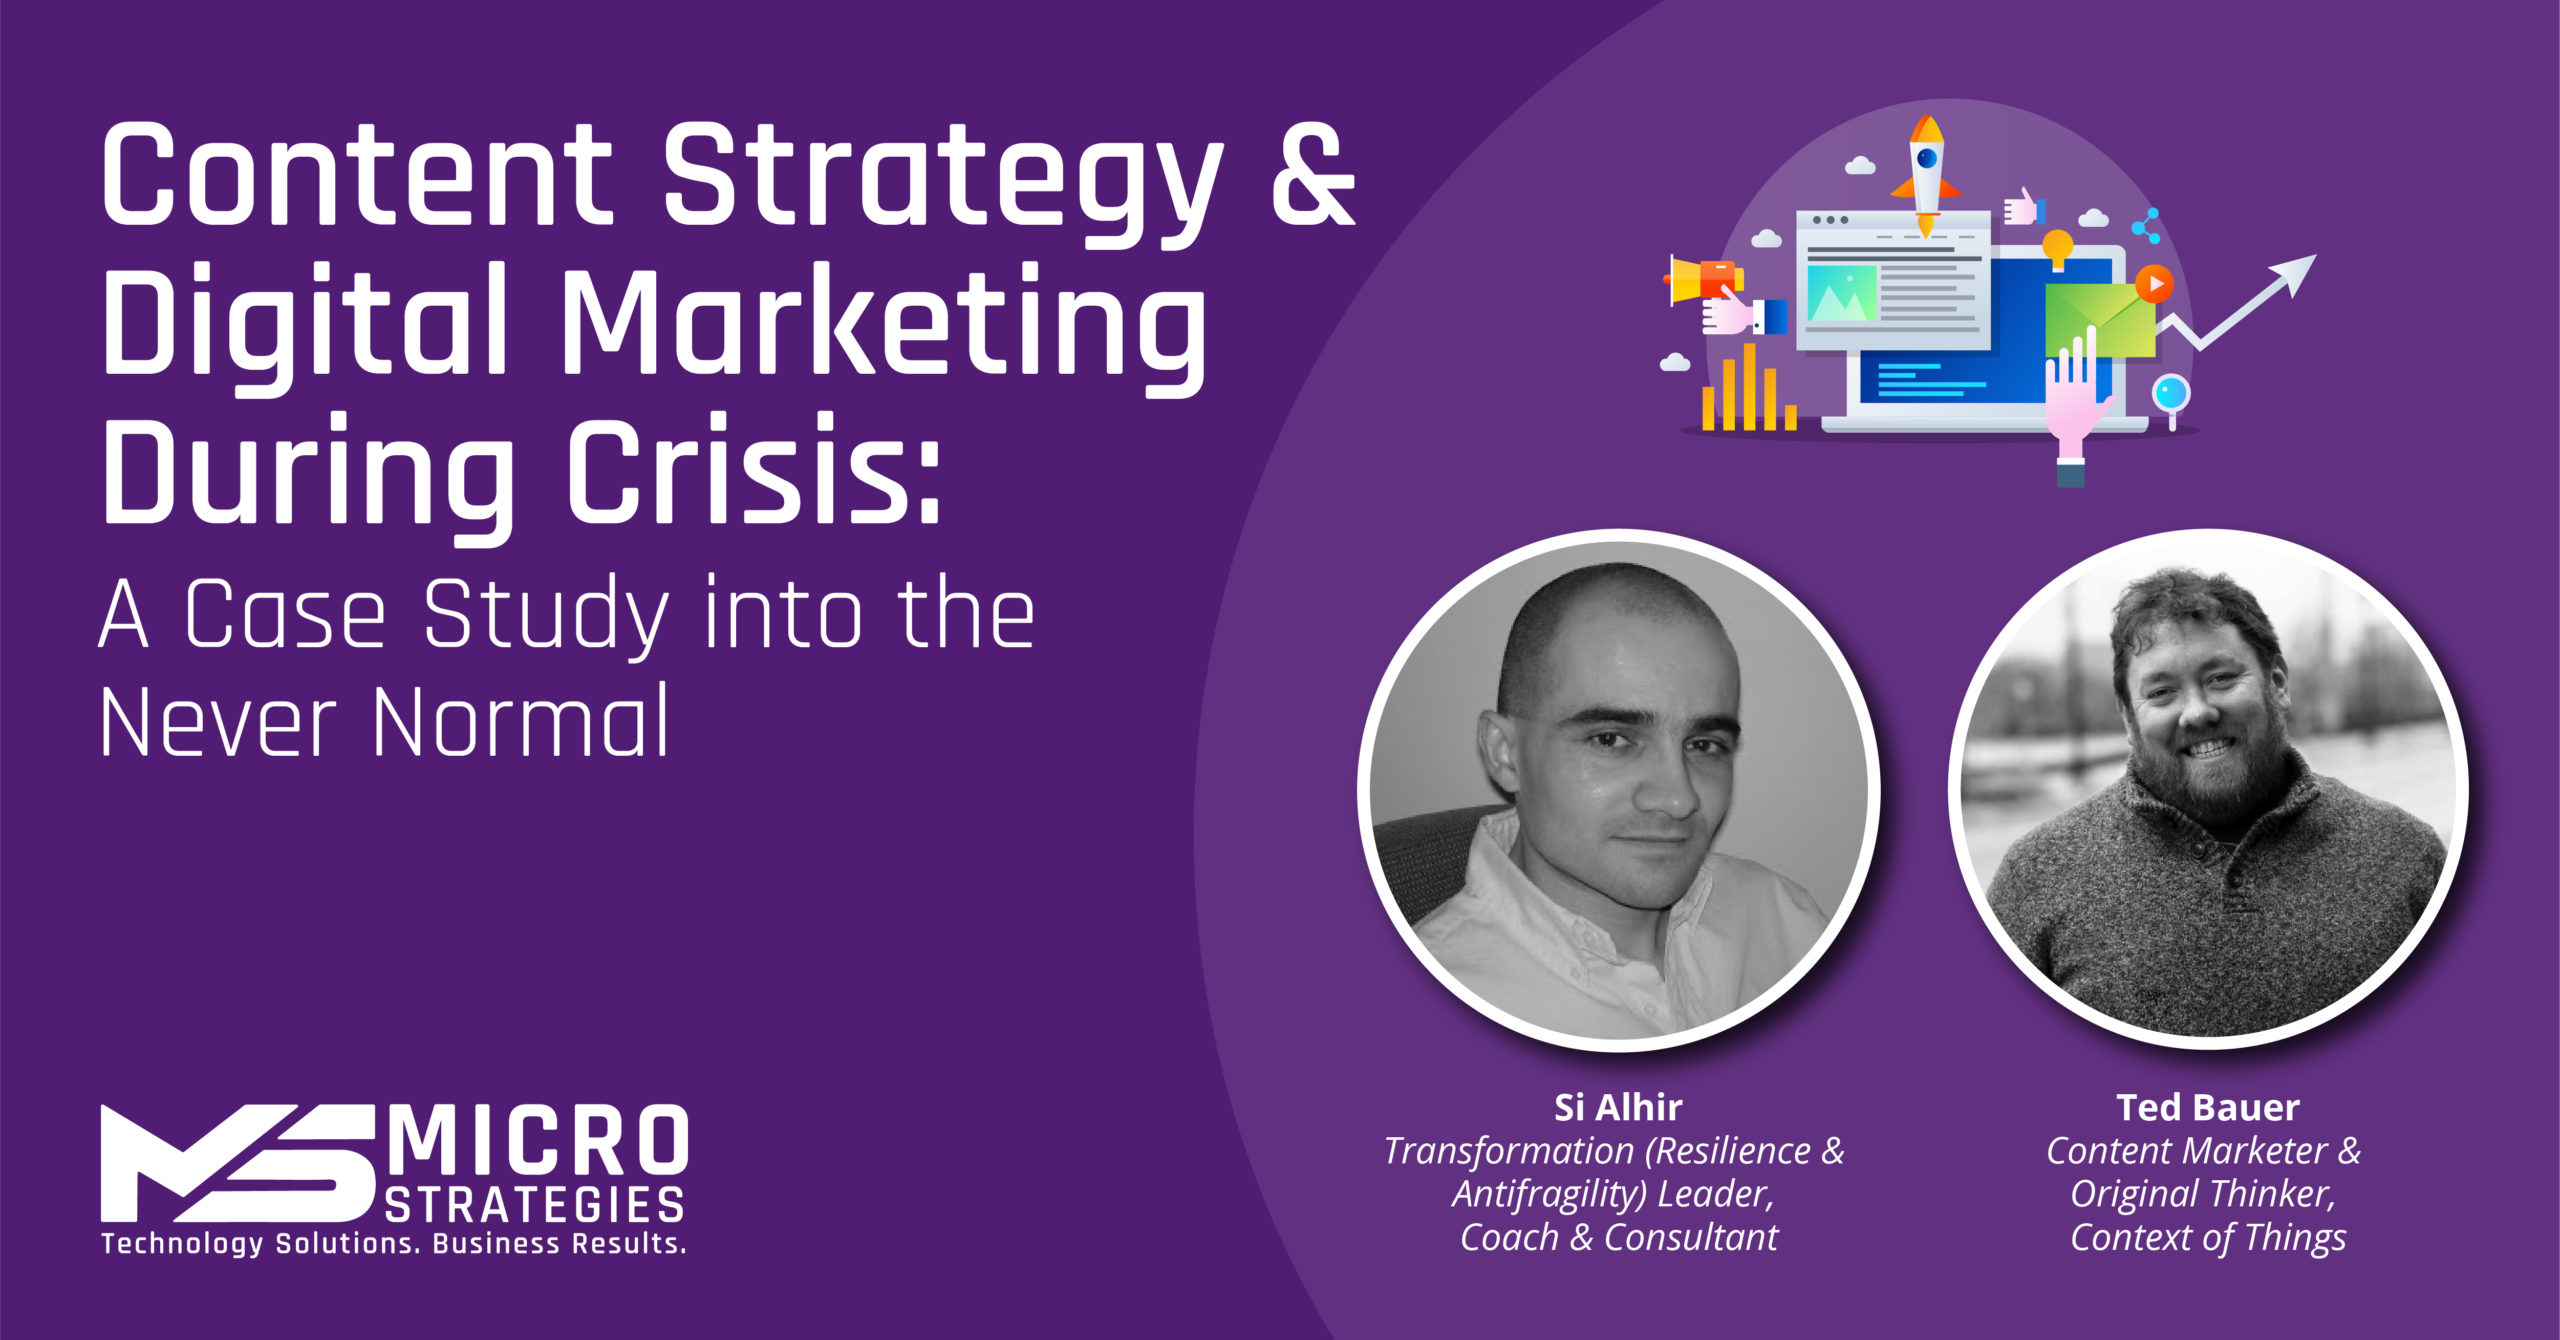 Content Strategy & Digital Marketing During Crisis: A Case Study into the Never Normal